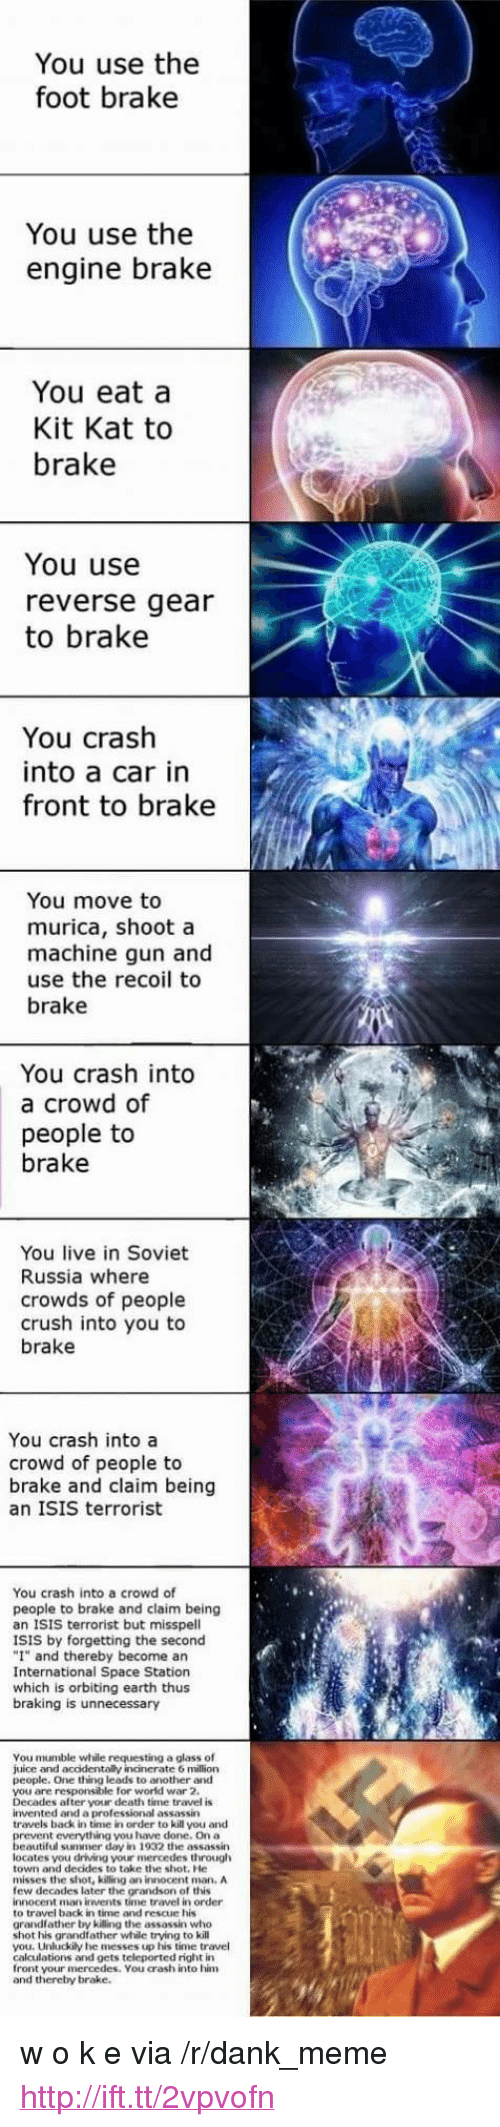 "in soviet russia: You use the  foot brake  You use the  engine brake  You eat a  Kit Kat to  brake  You use  reverse gear  to brake  You crash  into a car in  front to brake  You move to  murica, shoot a  machine gun and  use the recoil to  brake  You crash into  a crowd of  people to  brake  You live in Soviet  Russia where  crowds of people  crush into you to  brake  You crash into a  crowd of people to  brake and claim being  an ISIS terrorist  You crash into a crowd of  people to brake and claim being  an ISIS terrorist but misspell  ISIS by forgetting the second  ""I"" and thereby become an  International Space Station  which is orbiting earth thus  braking is unnecessary  You mumble while requesting a glass of  juice and accidentally incinerate 6 million  people. One thing leads to another and  you are responsible for world war 2.  Decades after your death time travel is  invented and a professional assassin  travels back in time in order to kill you and  nt everything you have done. On a  eautiful summer day in 1932 the assassin  locates you driving your mercedes through  town and decides to take the shot. He  misses the shot, killing an innocent mman. A  few decades later the grandson of this  innocent man invents time travel in order  to travel back in time and rescue his  grandlather by killing the assassin who  shot his grandfather while trying to kill  you. Unluckily he messes up his time travel  calculations and gets teleported right in  front your mercedes. You crash into him  and thereby brake. <p>w o k e via /r/dank_meme <a href=""http://ift.tt/2vpvofn"">http://ift.tt/2vpvofn</a></p>"